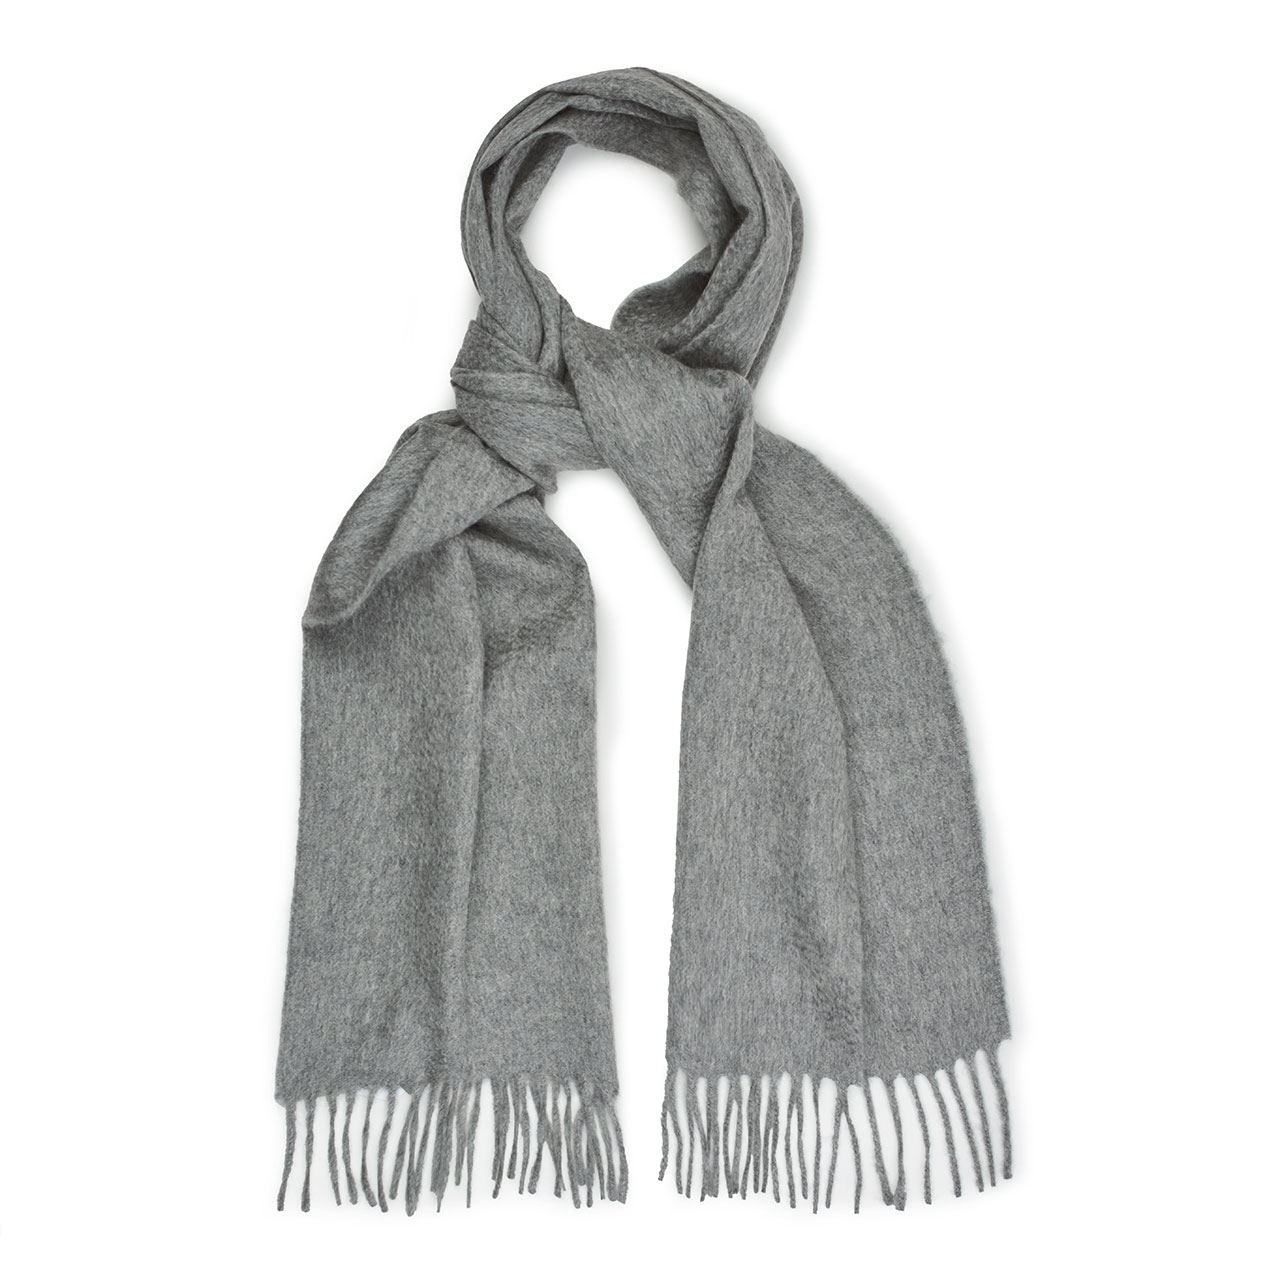 Plain Ripple Cashmere Scarf in Flannel Grey